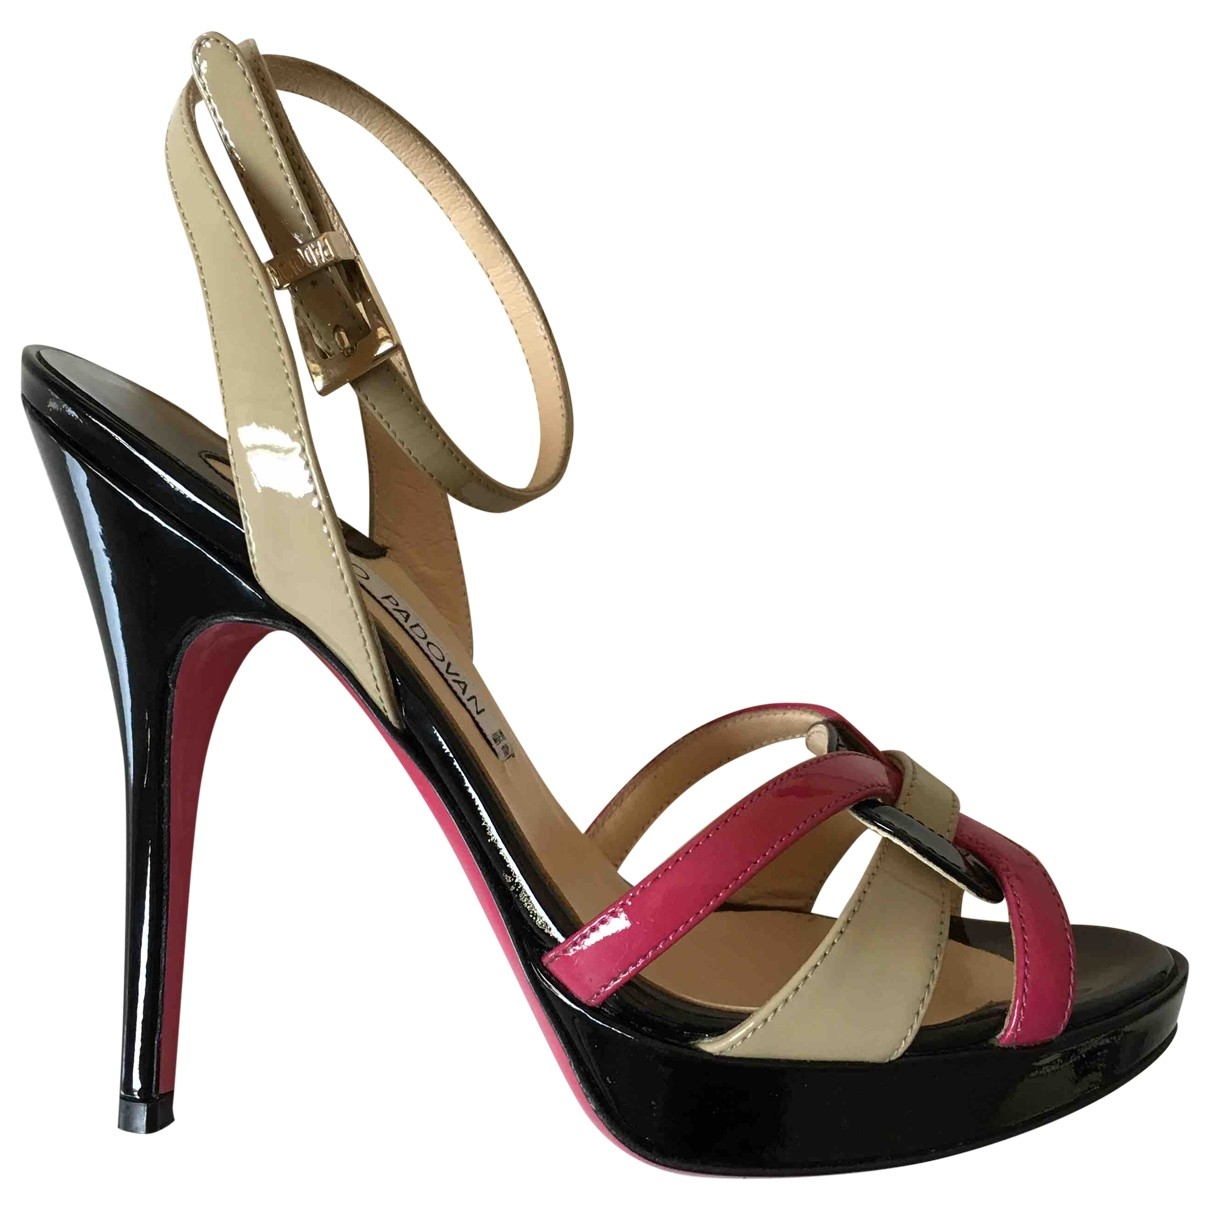 Luciano Padovan \N Multicolour Patent leather Sandals for Women 35 EU